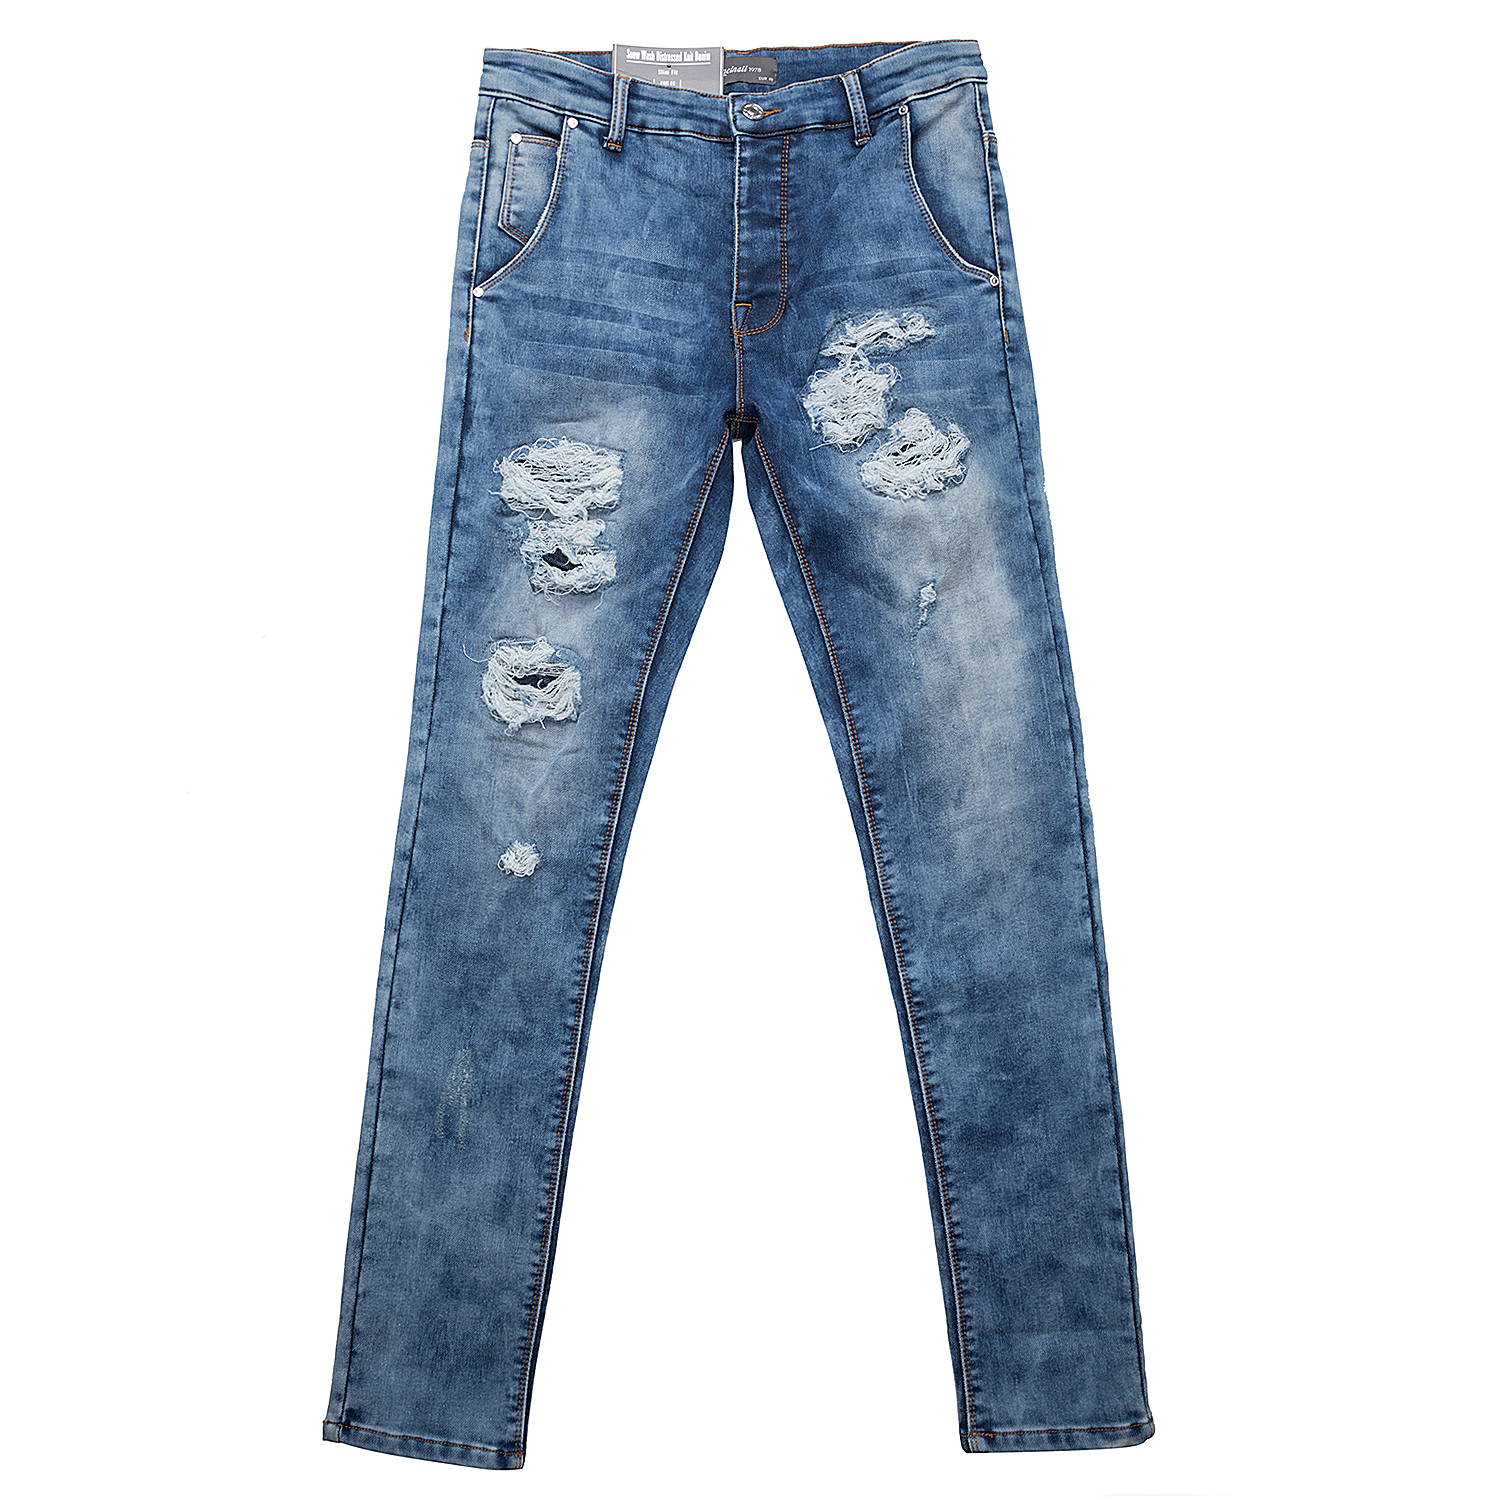 <b>Distressed Knit Denim Jeans</b>